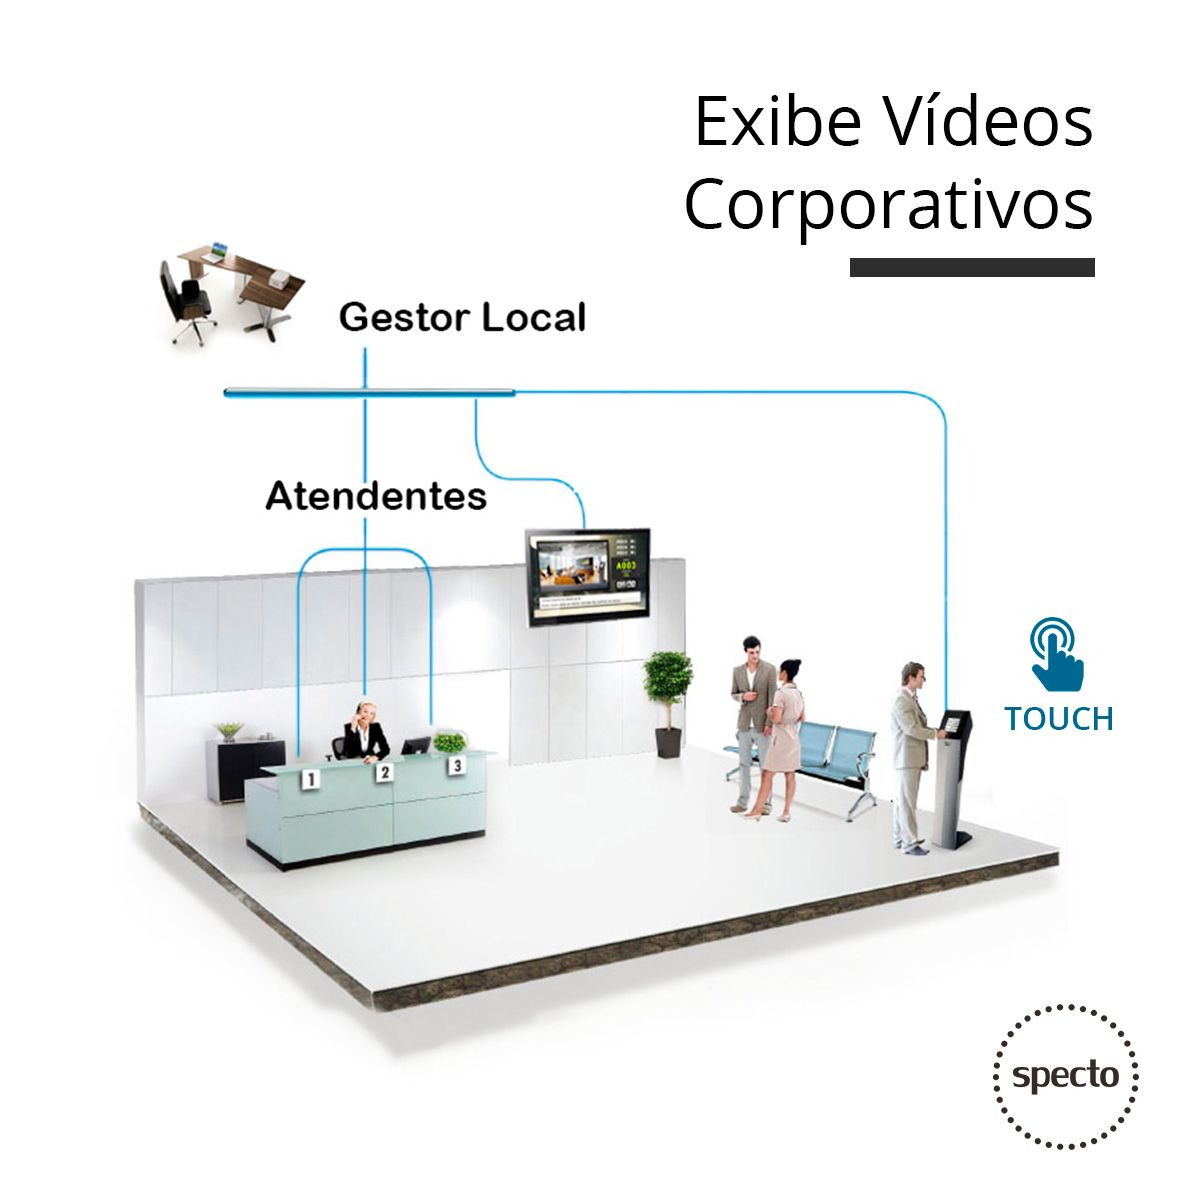 QUALPROX® UNITY Painel TV Corporativa com TES Touch  -  Specto Tecnologia